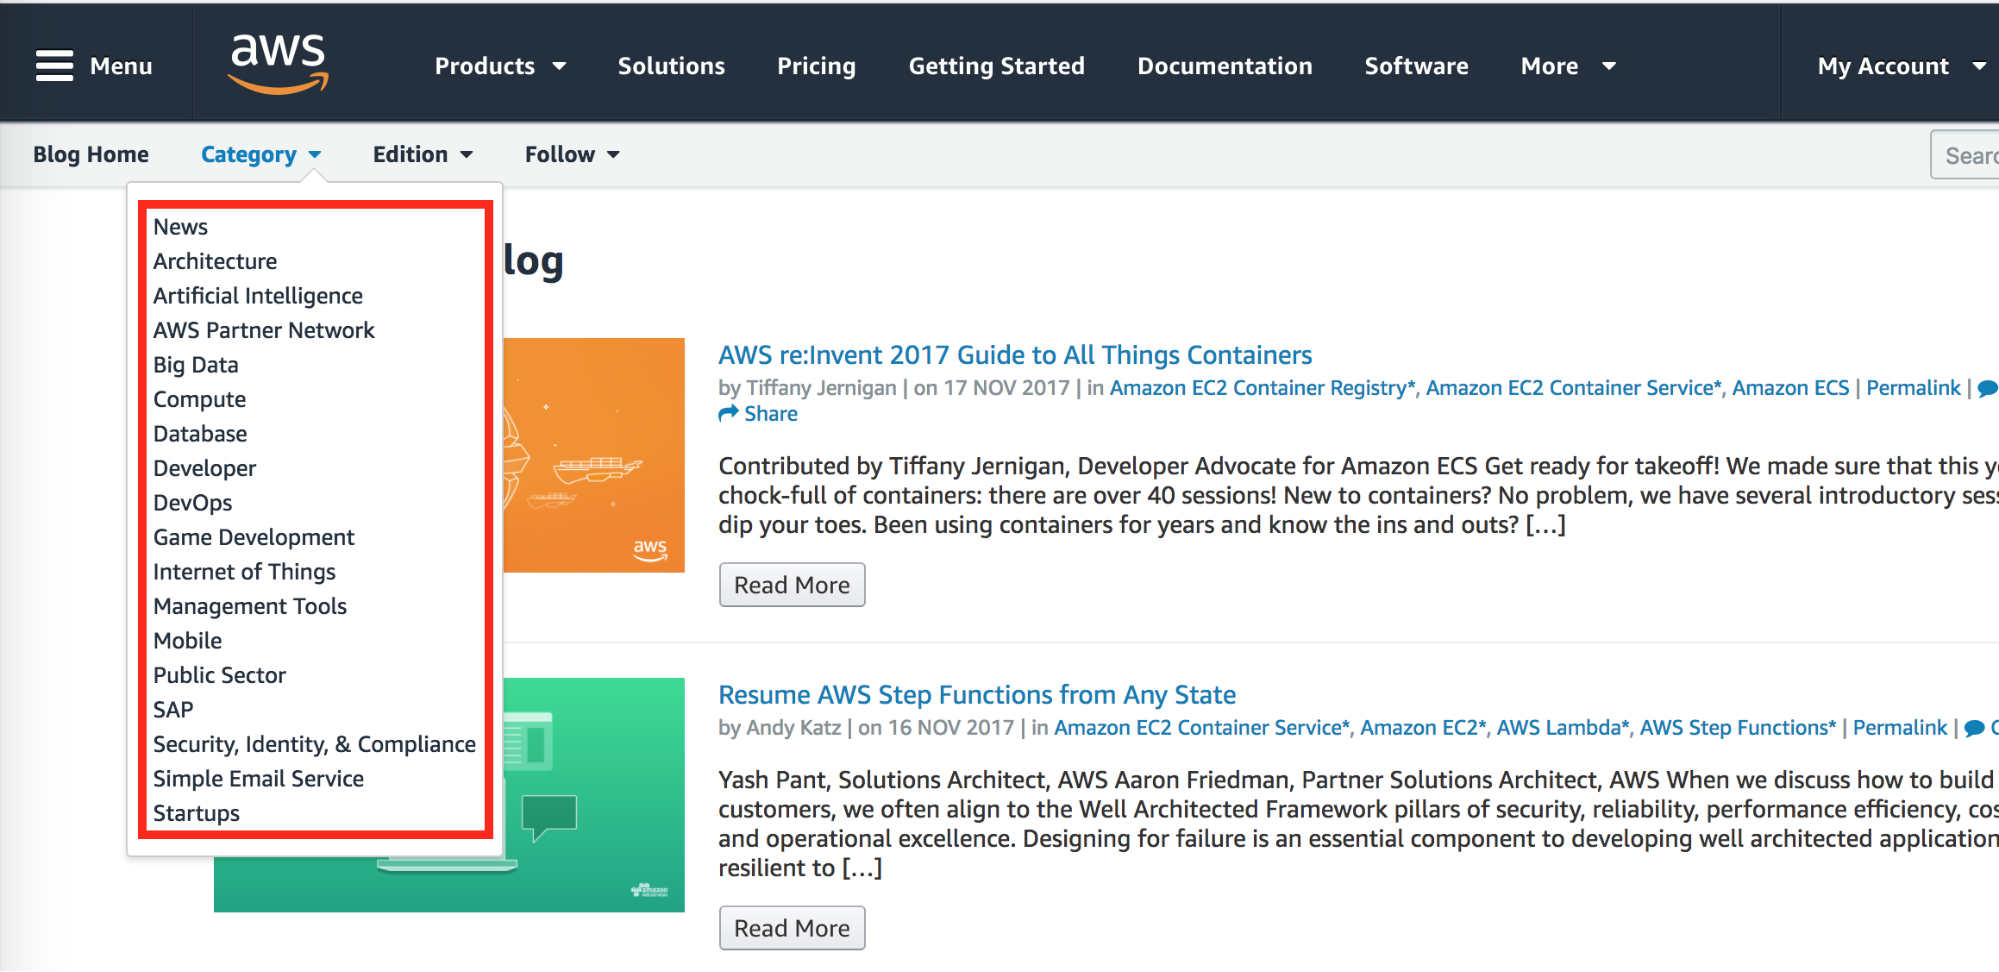 Screenshot showing categories on aws